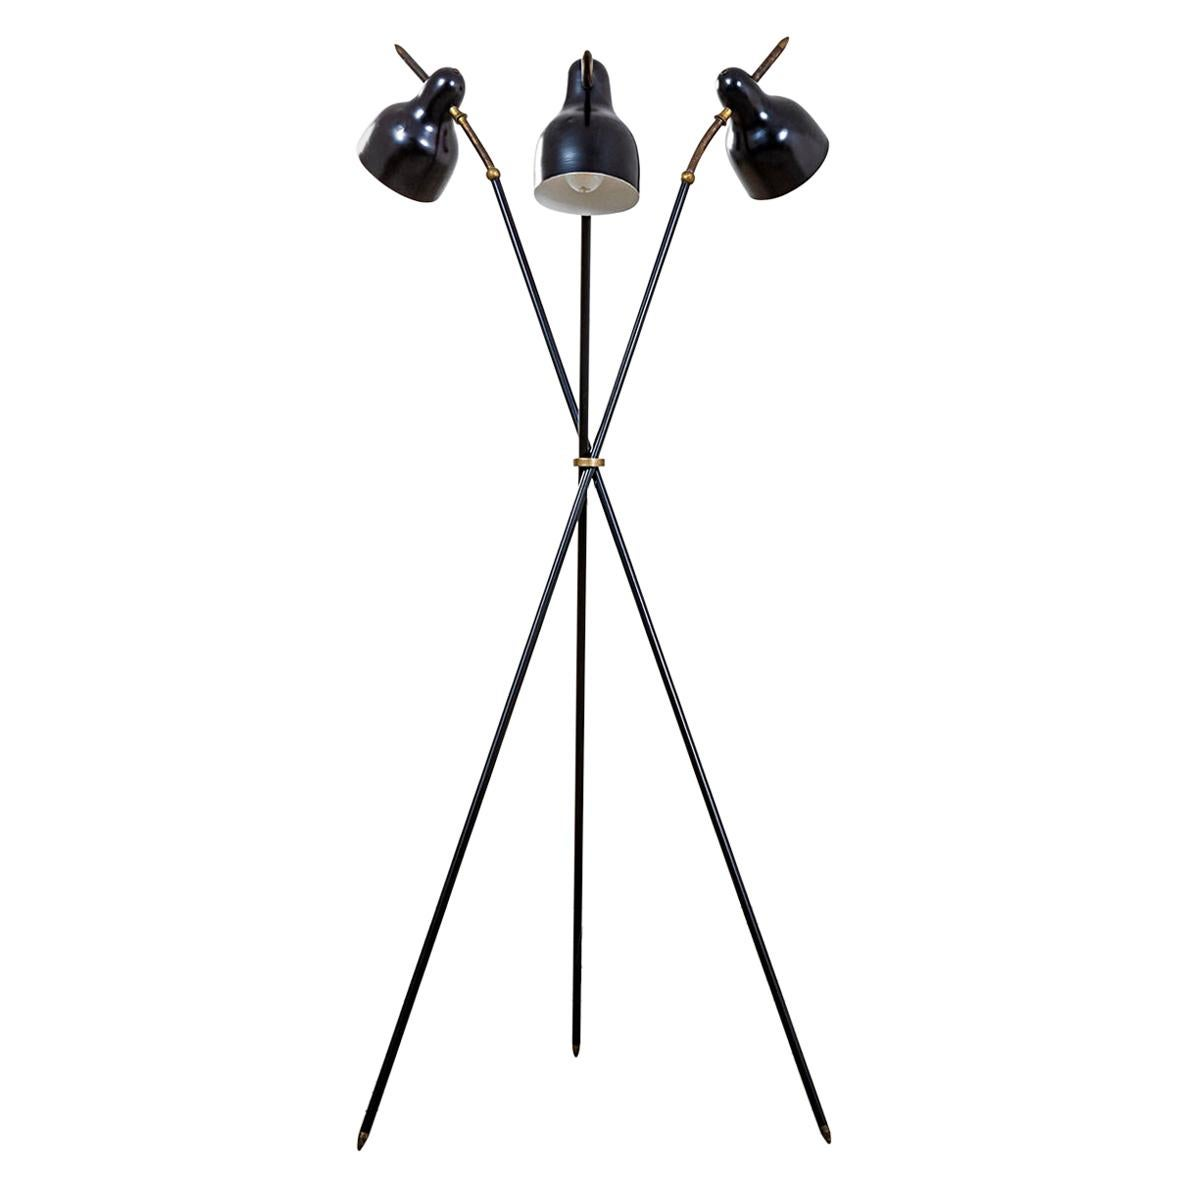 20th Century Angelo Lelii Floor Lamp by Arredoluce with Adjustable Diffusers